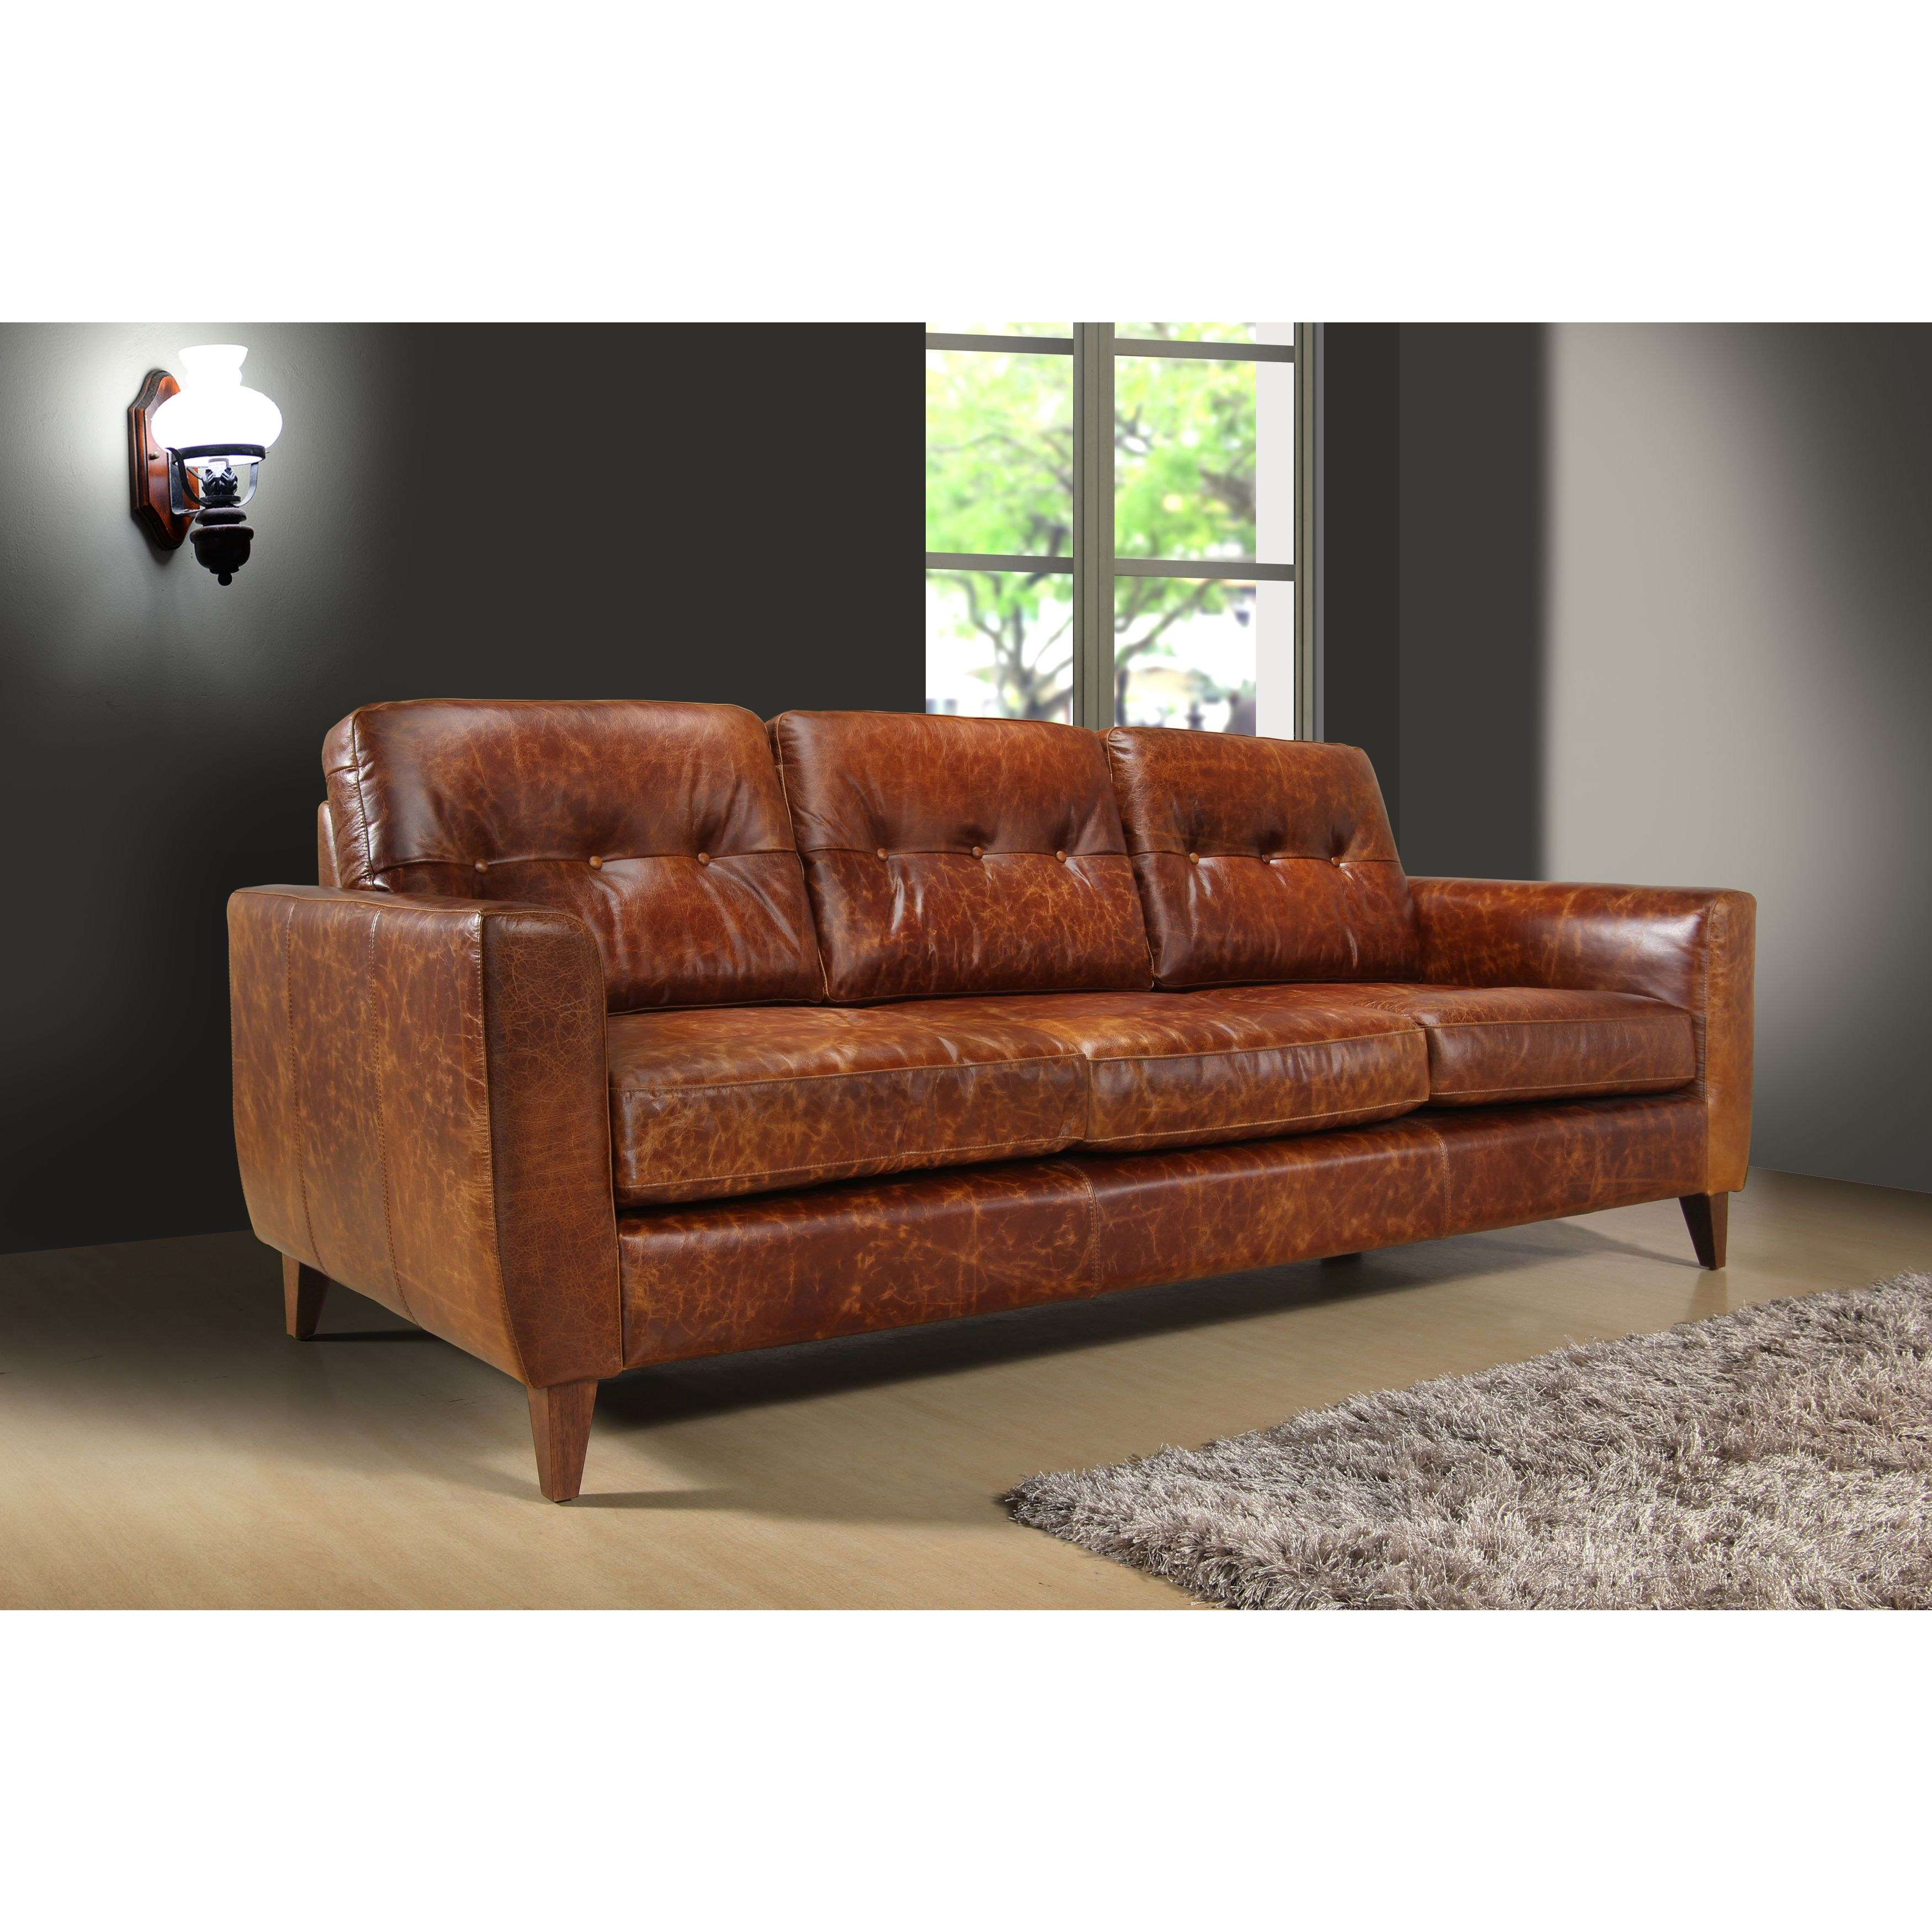 Austin Vintage Brown Leather 3 Seat Sofa By I Love Living